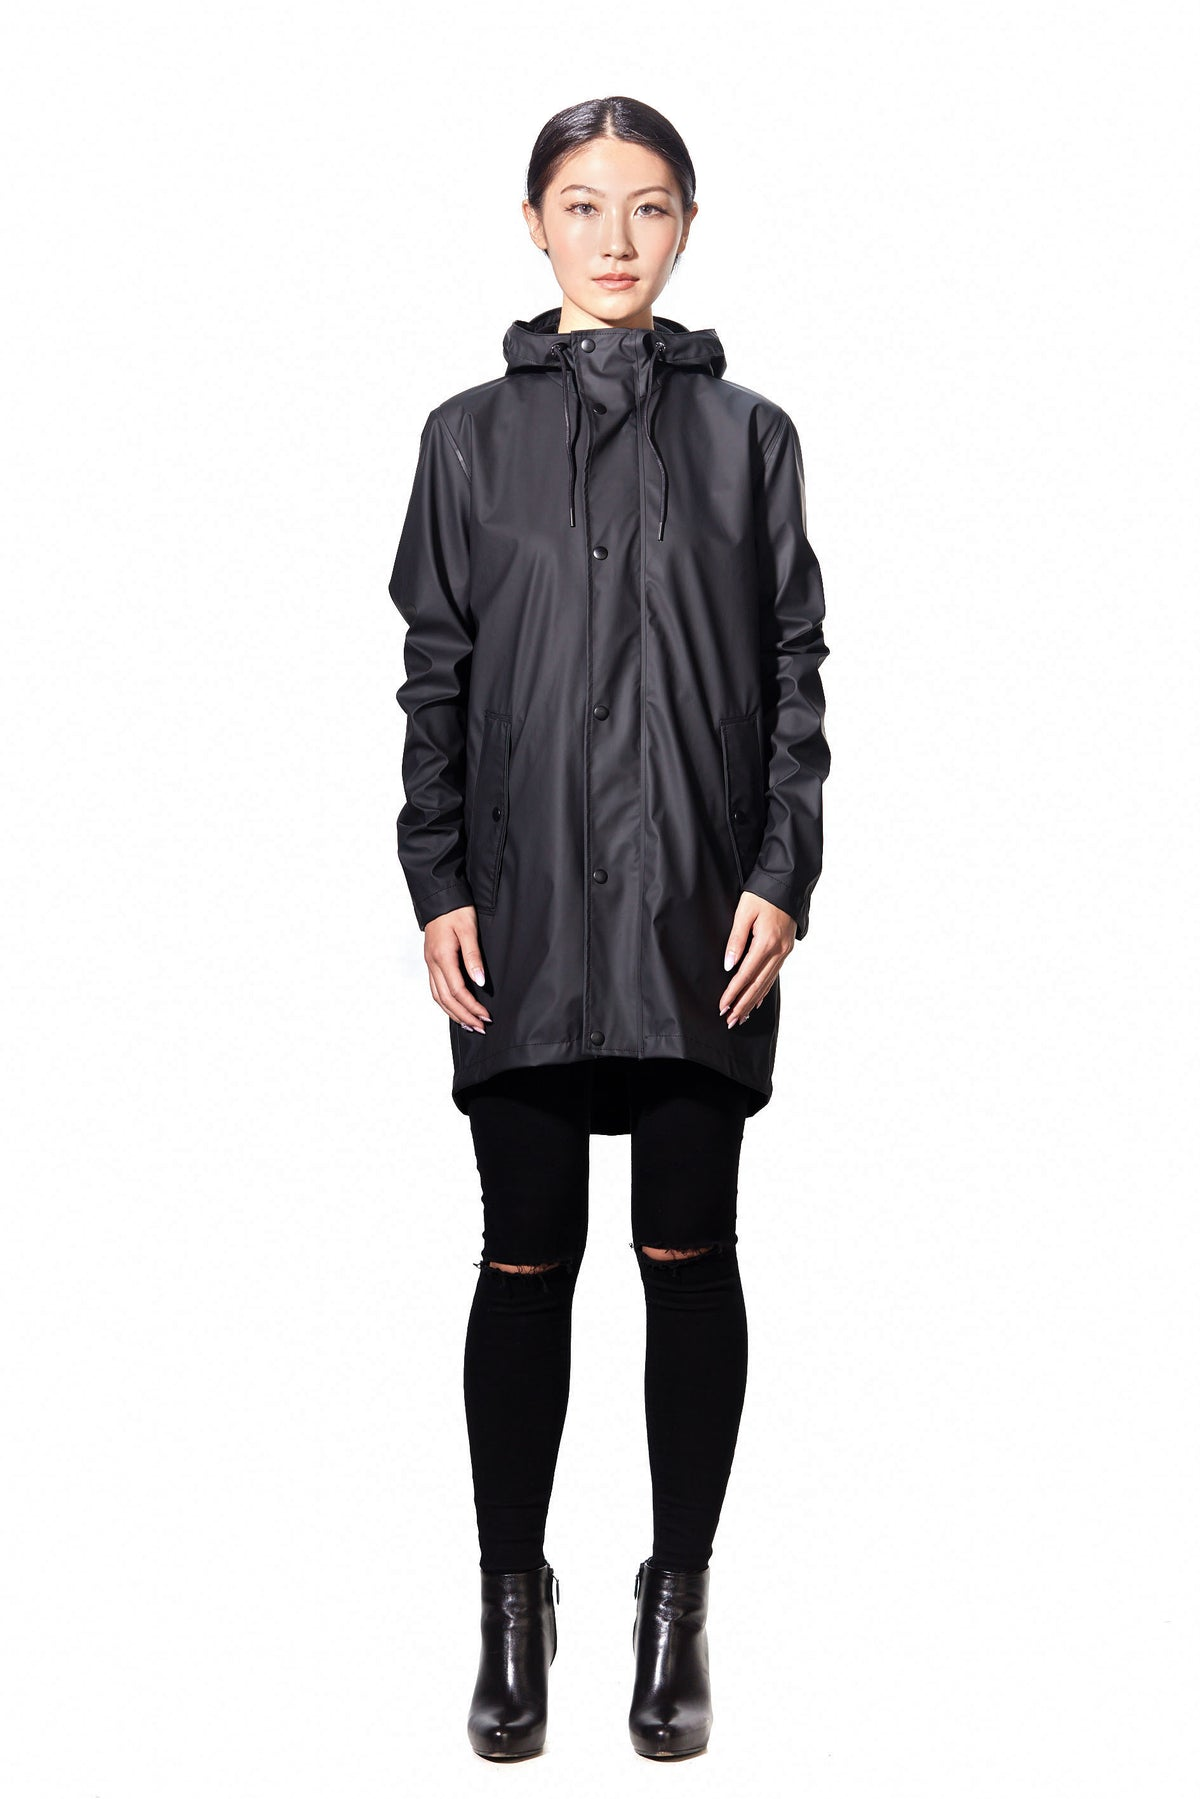 HYDROGEN RAIN JACKET WOMEN - Black